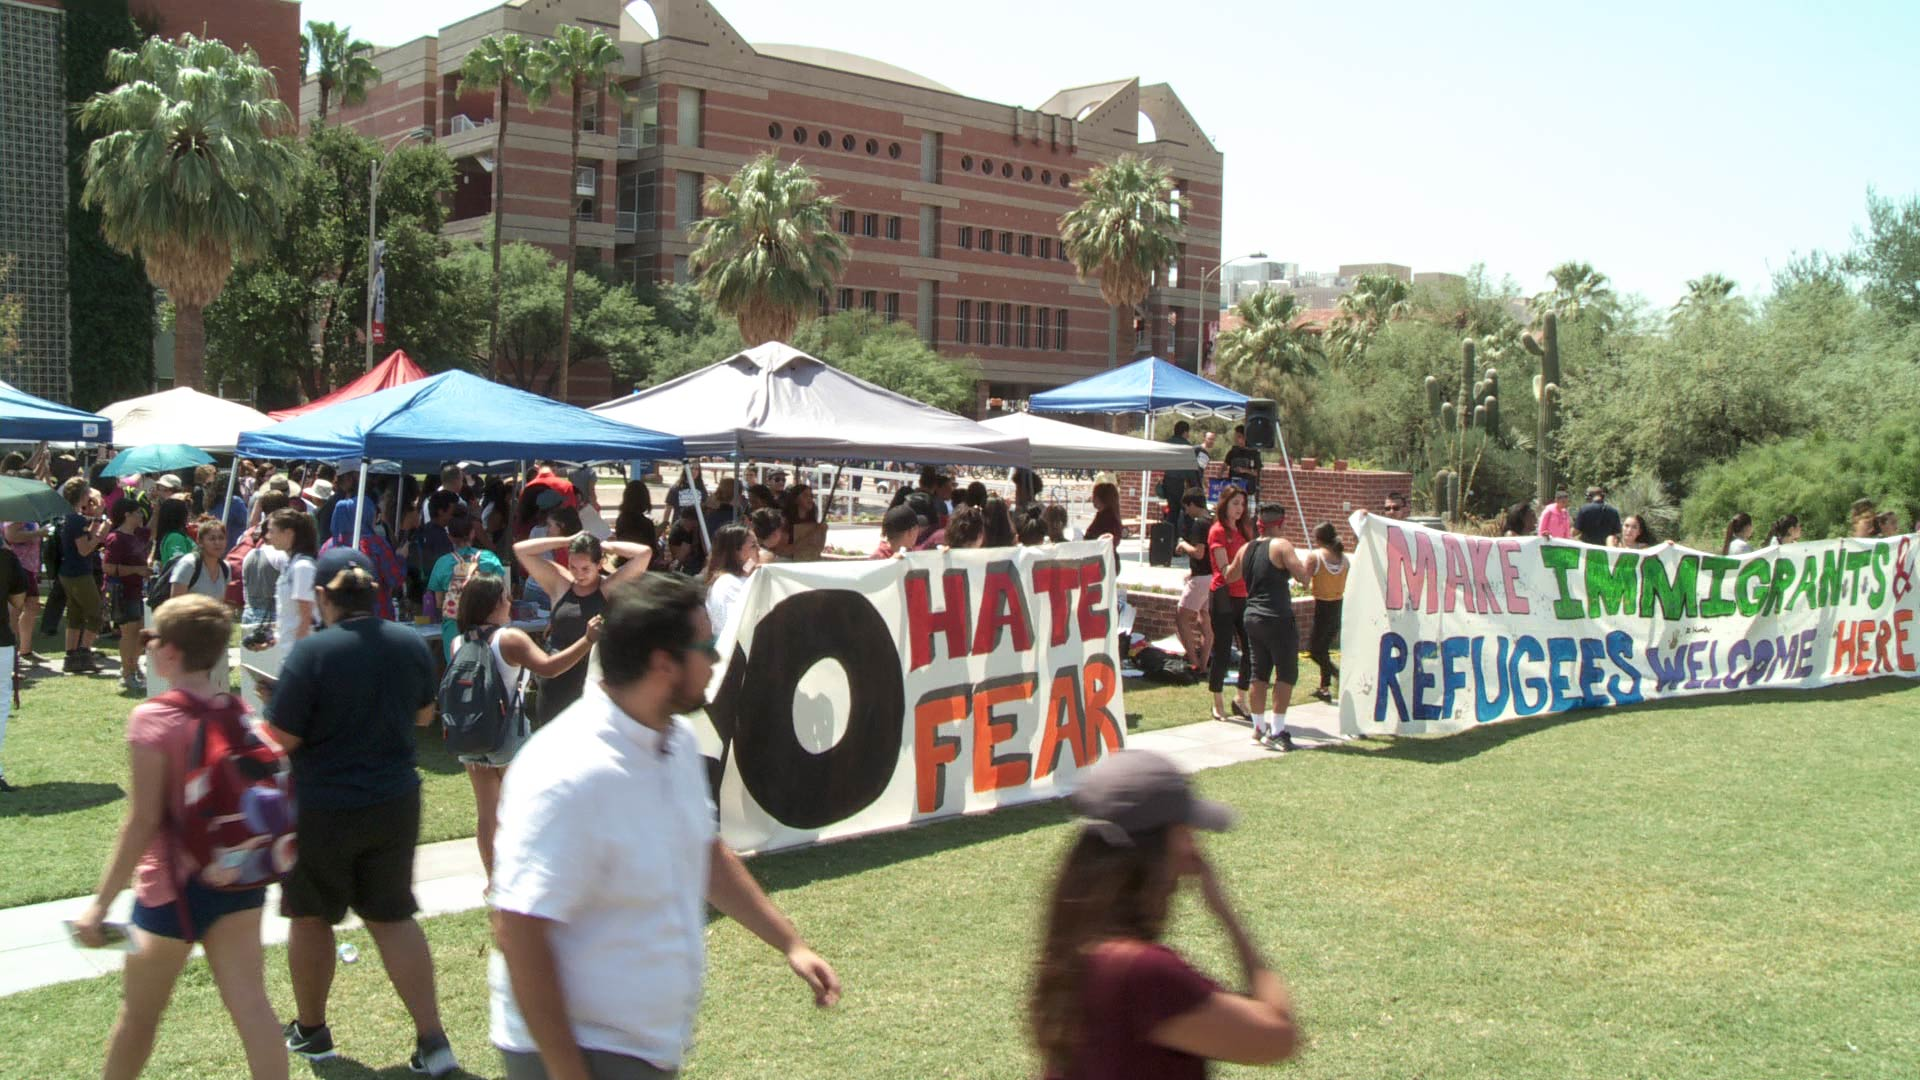 Students protest the DACA decision on the University of Arizona campus mall.